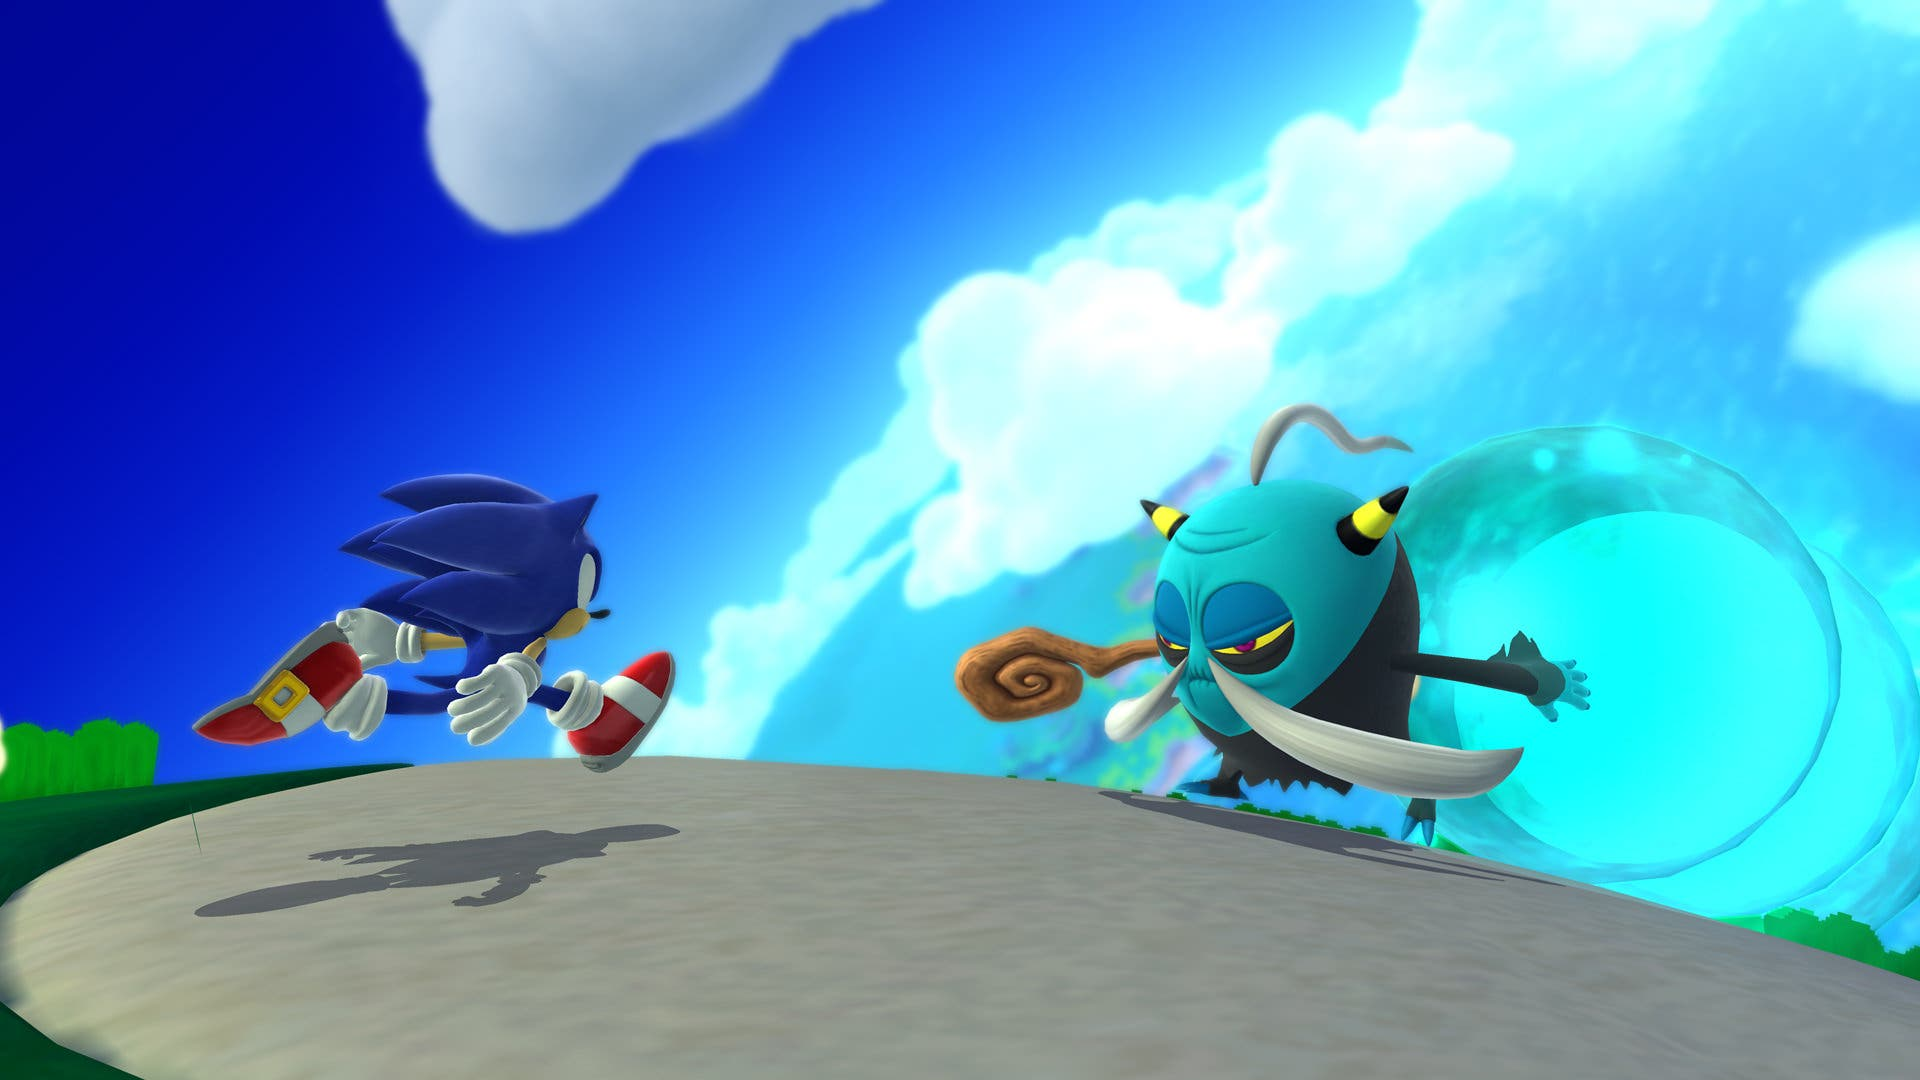 SEGA compara la dificultad entre 'Sonic Lost World' y 'Sonic Colours'